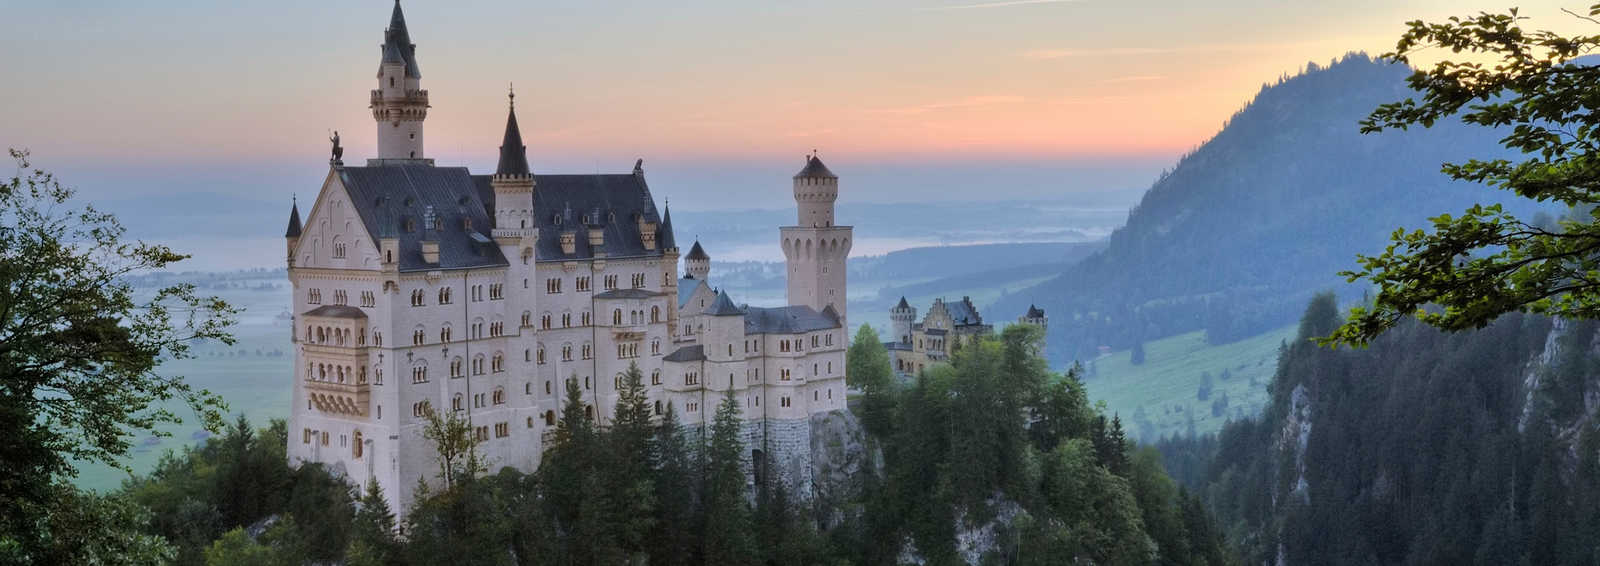 Neunschwanstein Castle at the Dawn, Germany